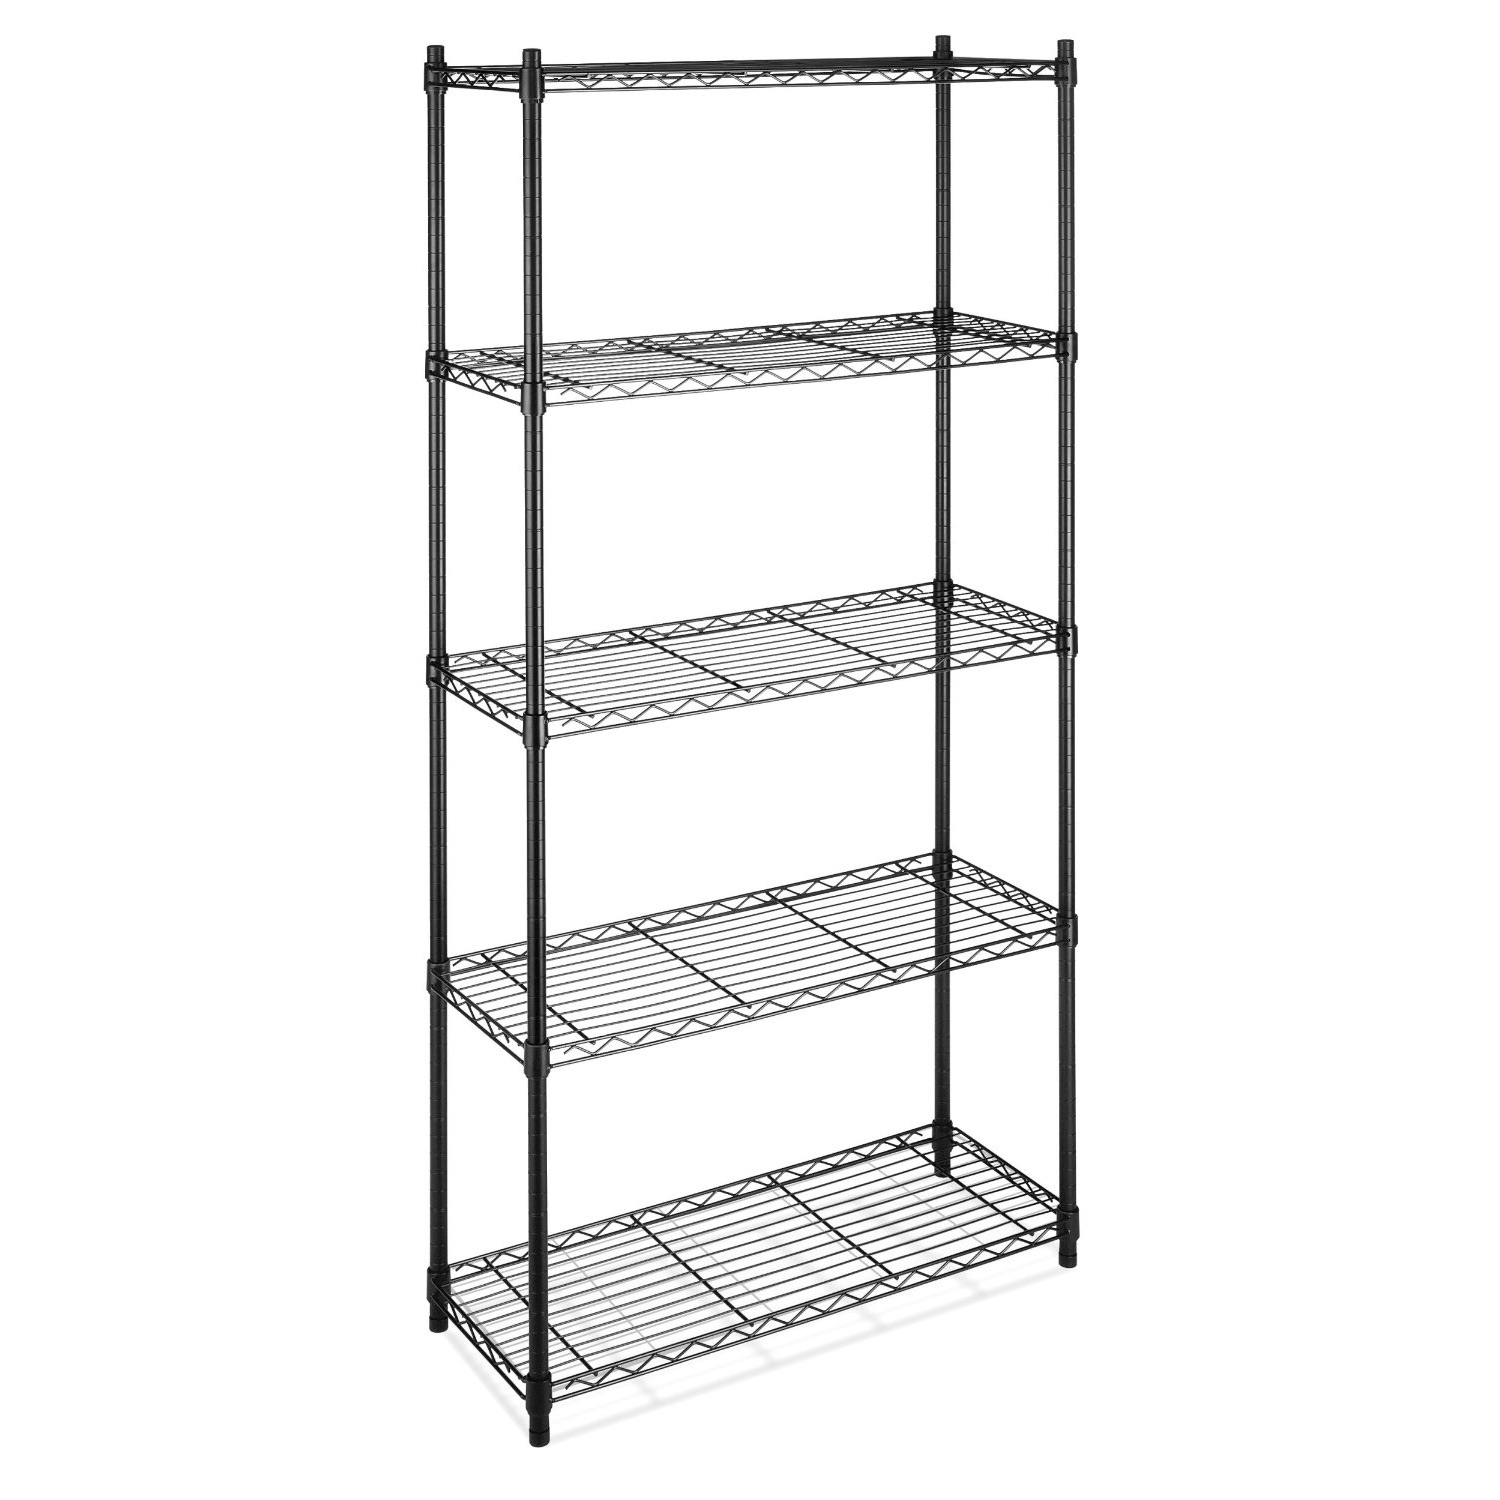 """5-Shelf Storage Shelves Unit in Black-Coated Chrome Steel, WS5TSU791 :  Strong and sturdy, this 5-Shelf Storage Shelves Unit in Black-Coated Chrome Steel features three, four or five shelves that each hold up to 350 pounds. The small shelving unit has three shelves that each hold up to 200 pounds. Ideal for use in just about any room of your home, as well as in the garage, the shelves are also conveniently adjustable in 1"""" increments. Adjustable leveling feet; No tools required; Measures 36 by 14 by 72 inches (WxDxH); 10-year limited warranty; Chrome steel."""